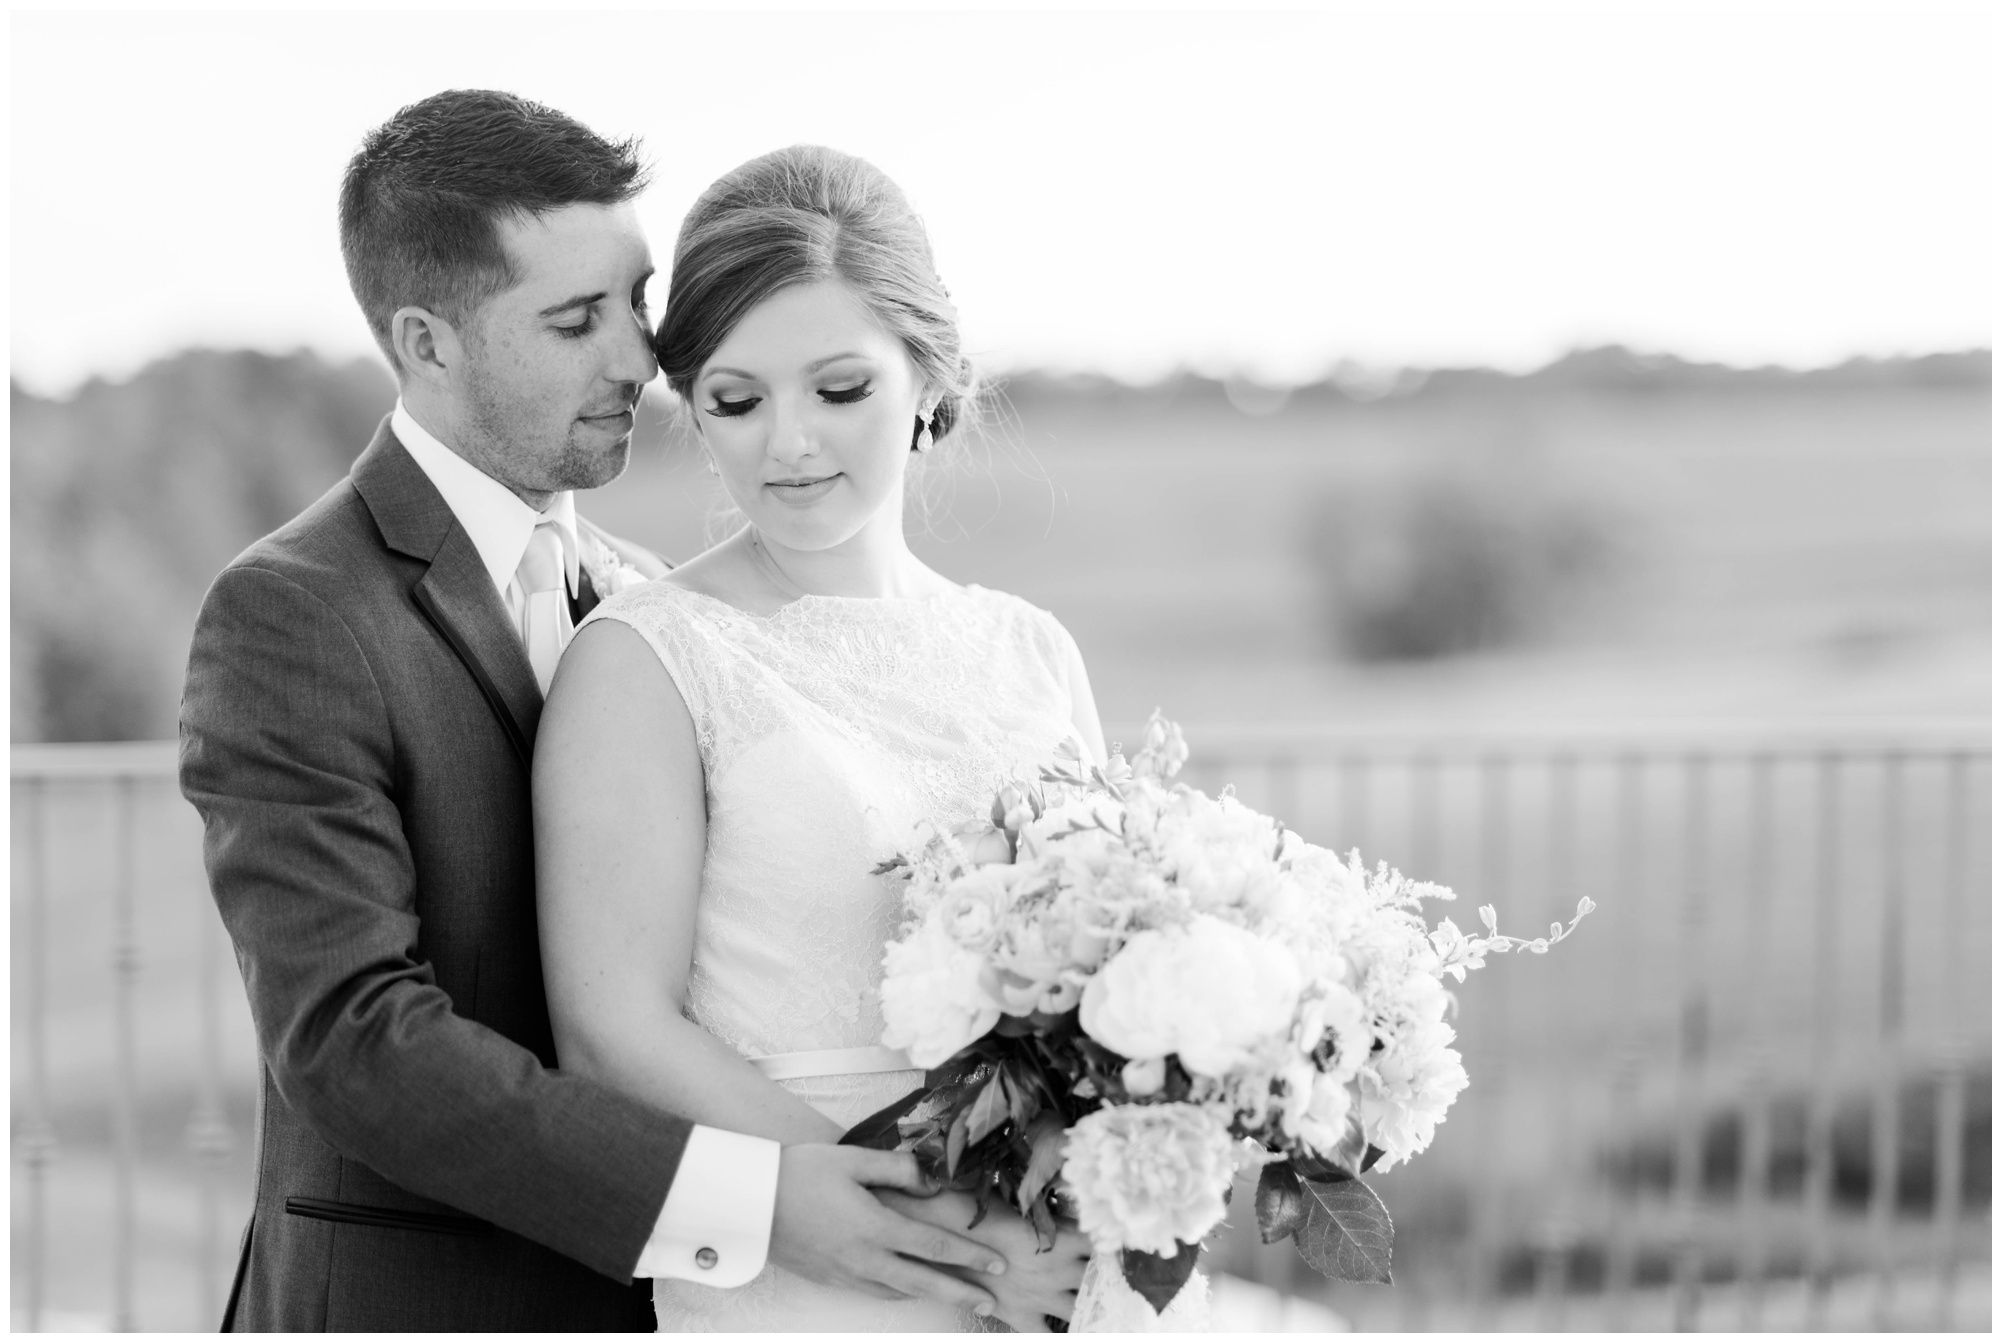 Pin on S&D Weddings Classic/Timeless/Plantation Weddings